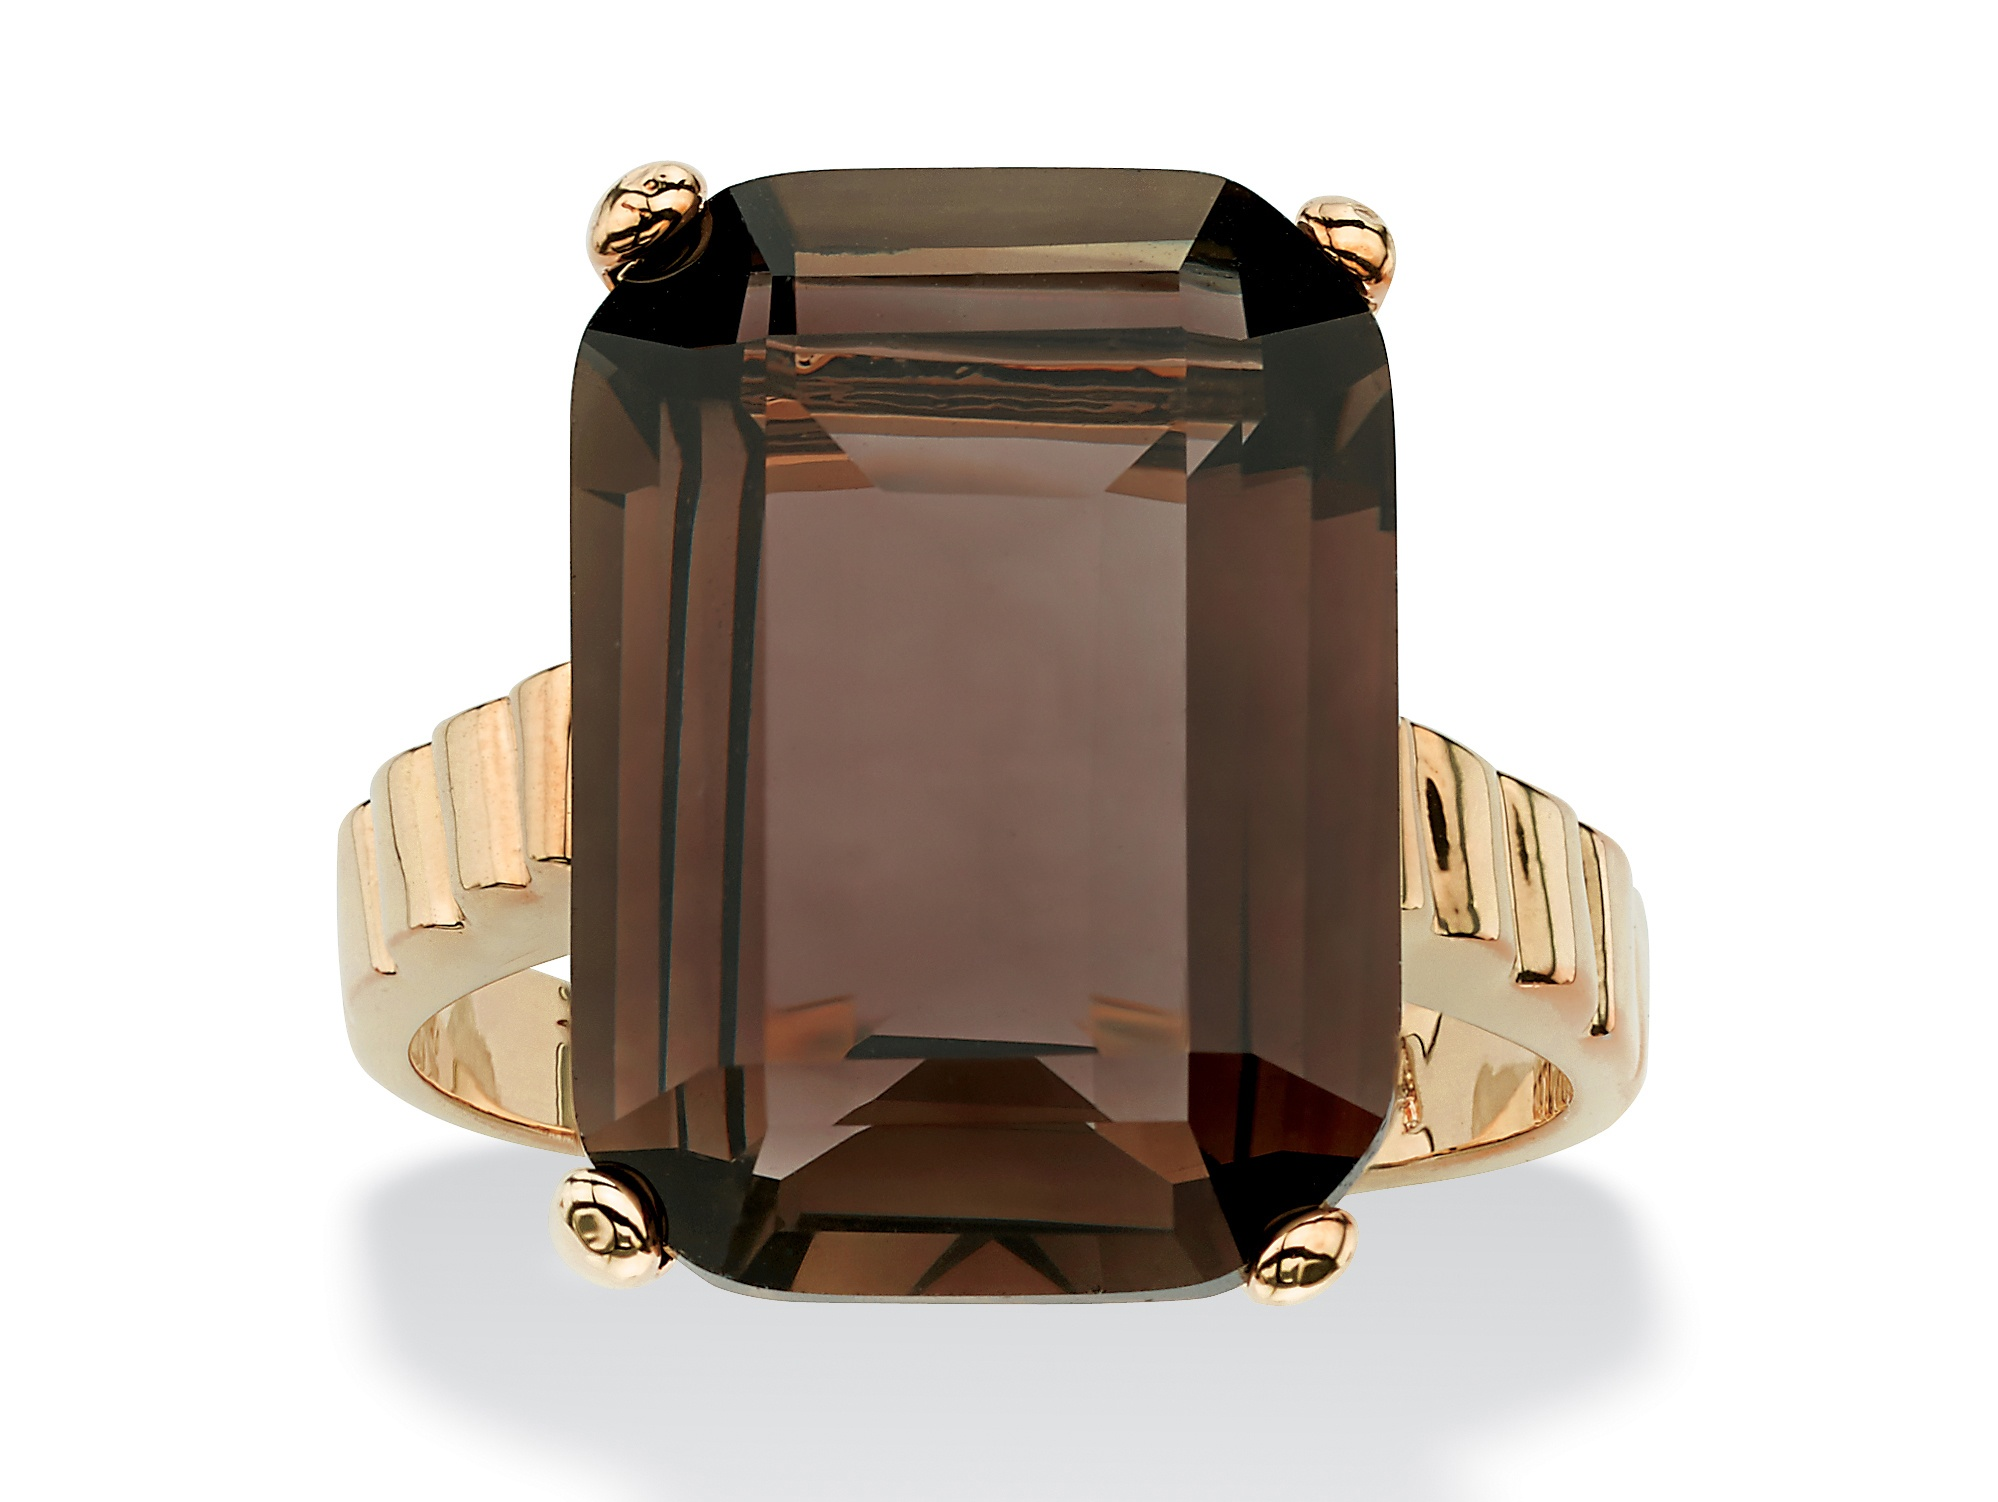 DV Jewels harming Ring with a Square Cut Gemstone in a Unique and Feminine Design